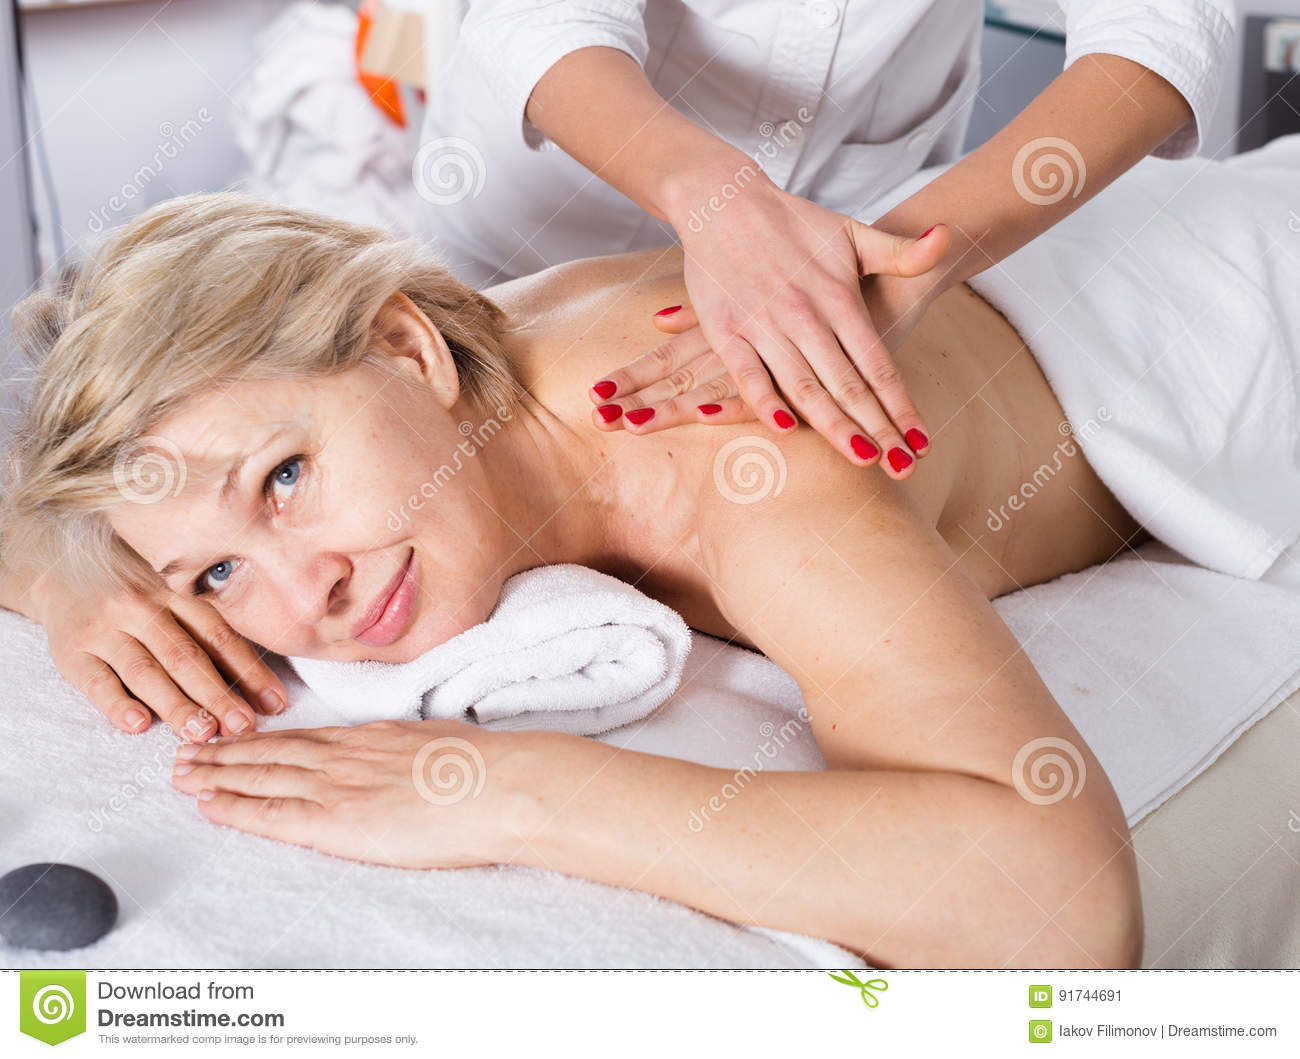 Reife frauen massage